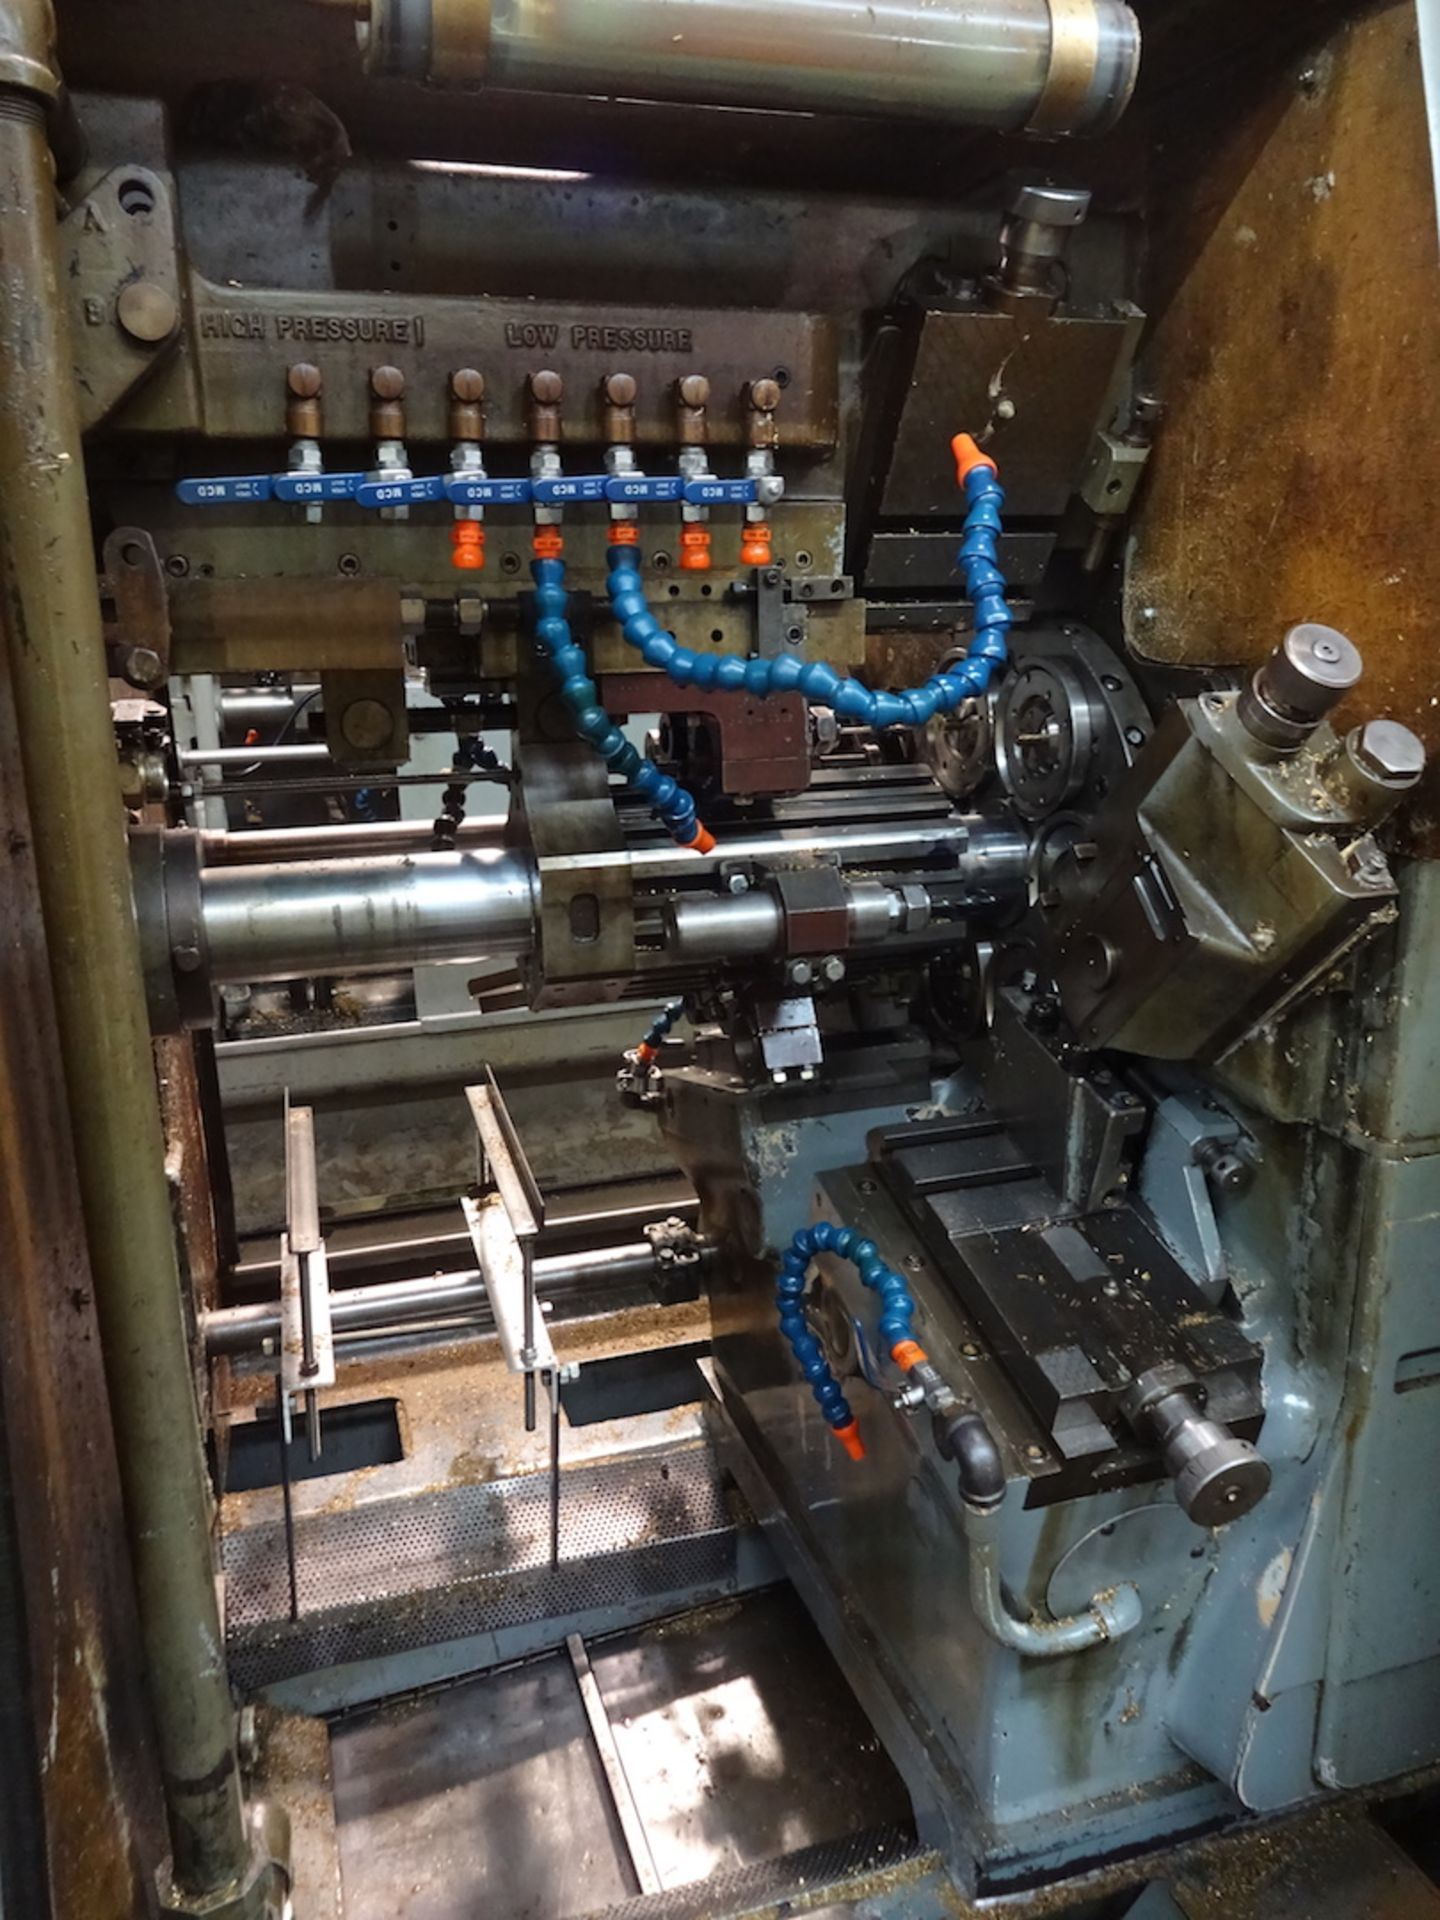 Lot 31 - Warner & Swasey 1-1/4 in. 6-Spindle Bar Automatic, S/N 1702716, M-3300